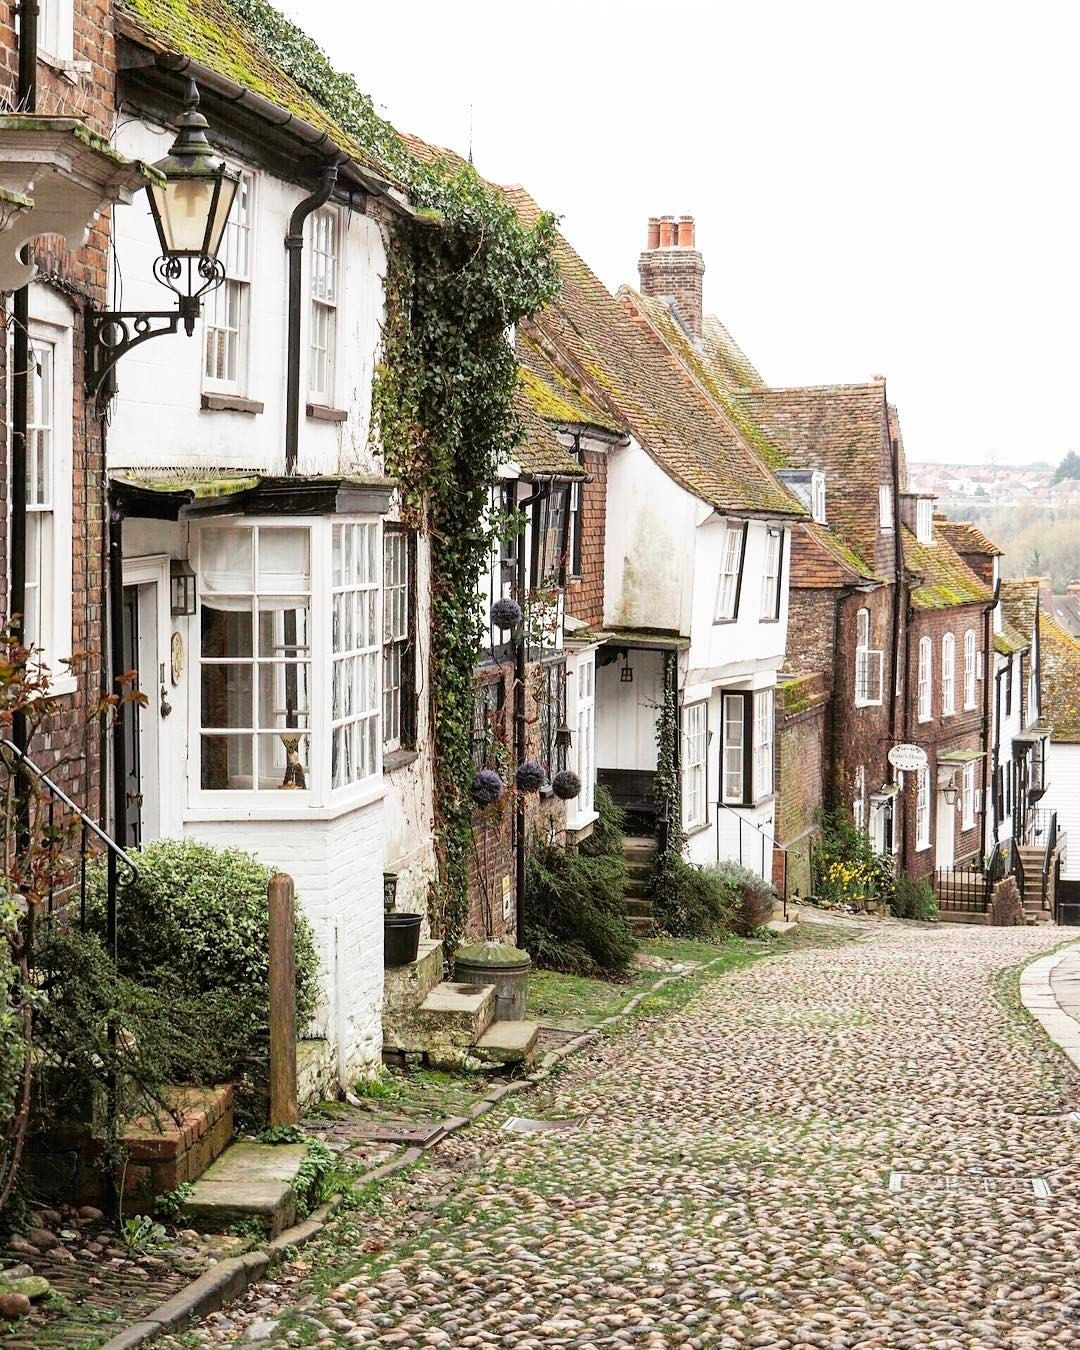 The cobbled Mermaid Street in Rye, with its old quaint houses, is oh so charming and quintessentially British